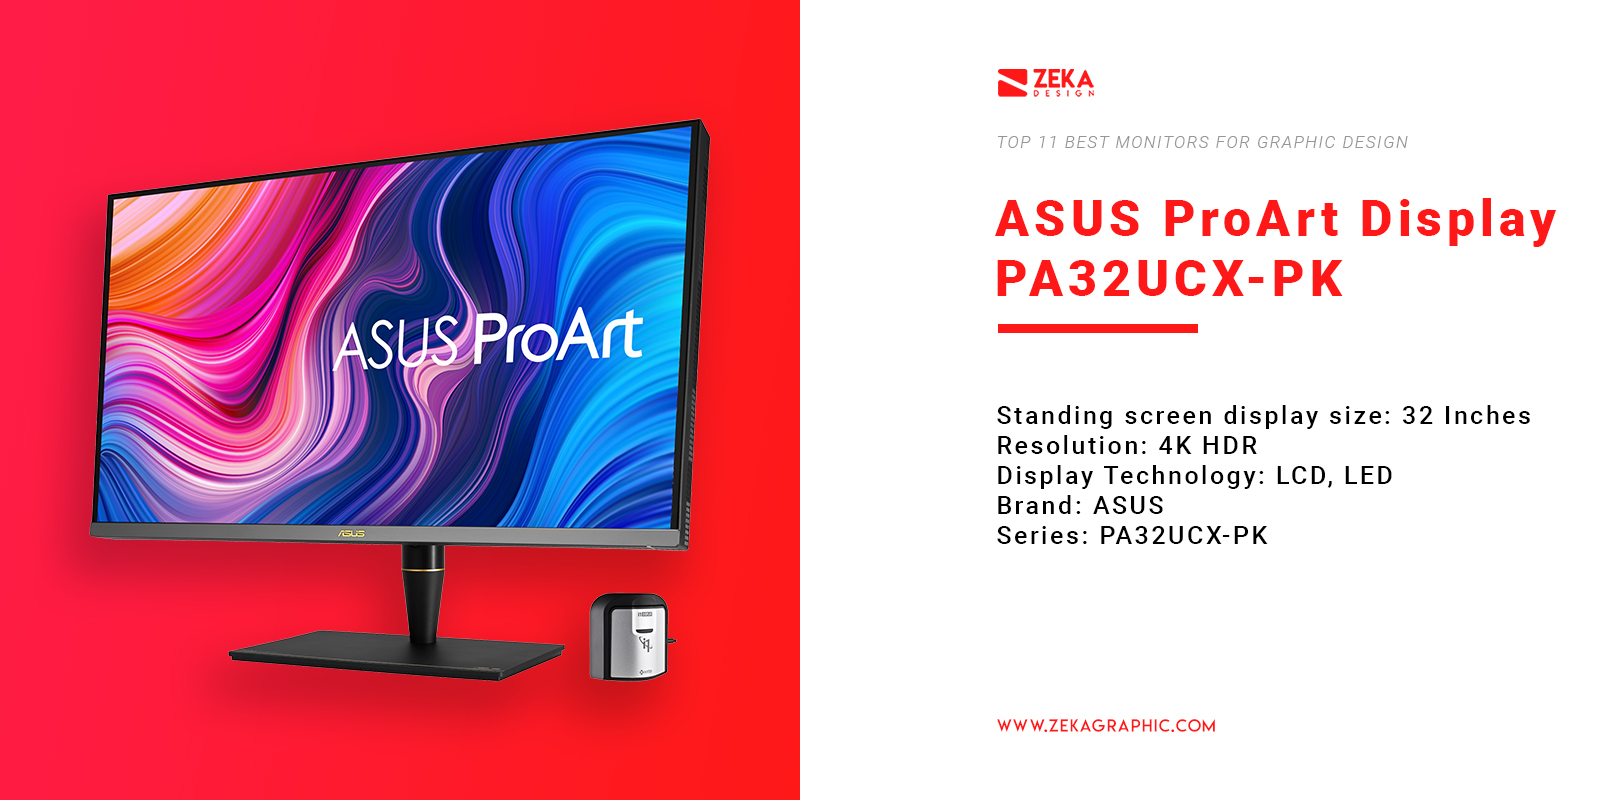 ASUS ProArt Display PA32UCX-PK 4K Monitor for Graphic Design